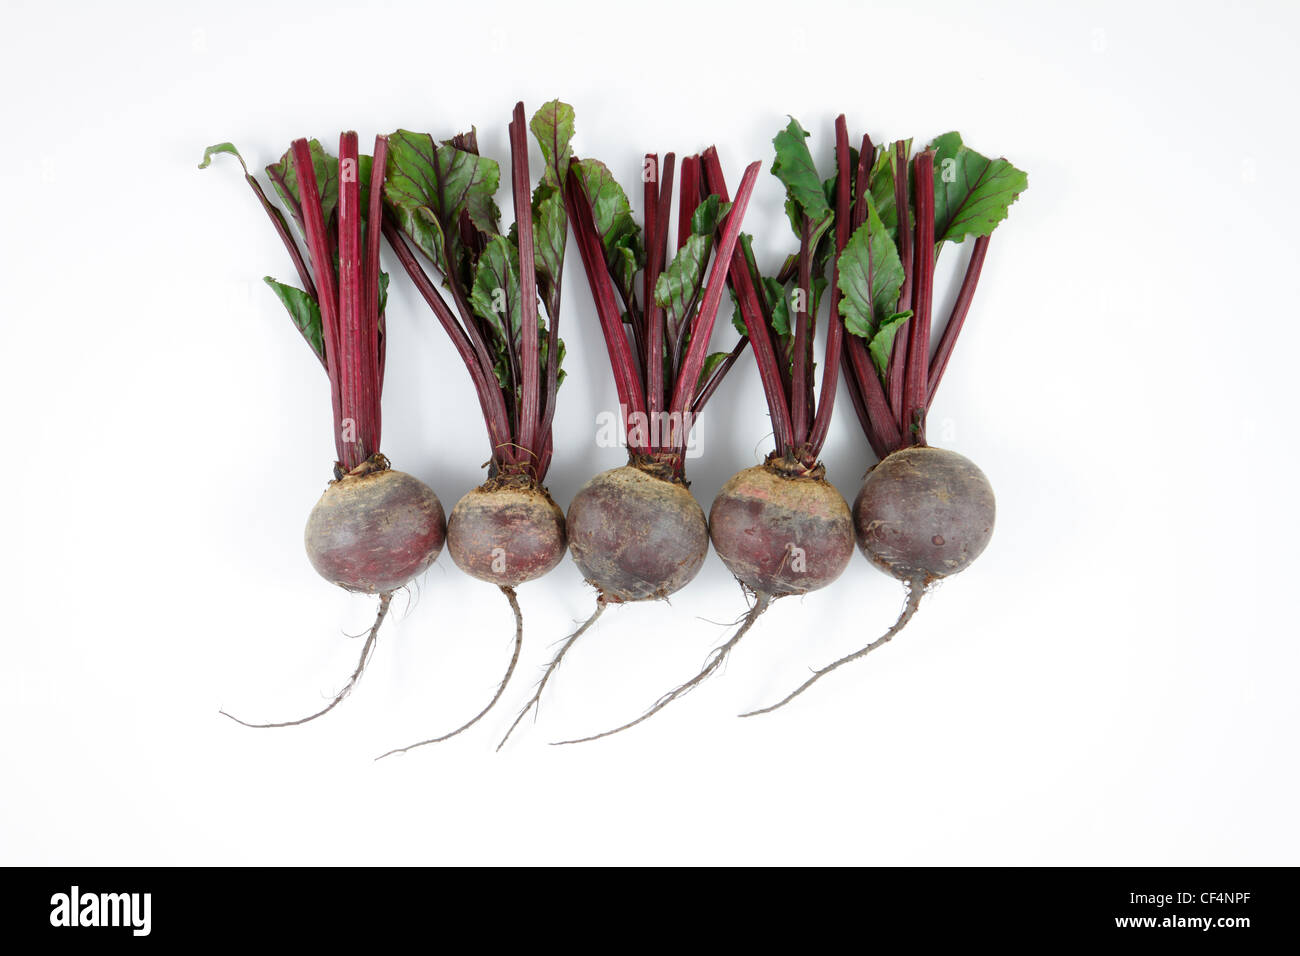 Five whole beetroots with stems and leaves on a white background. - Stock Image